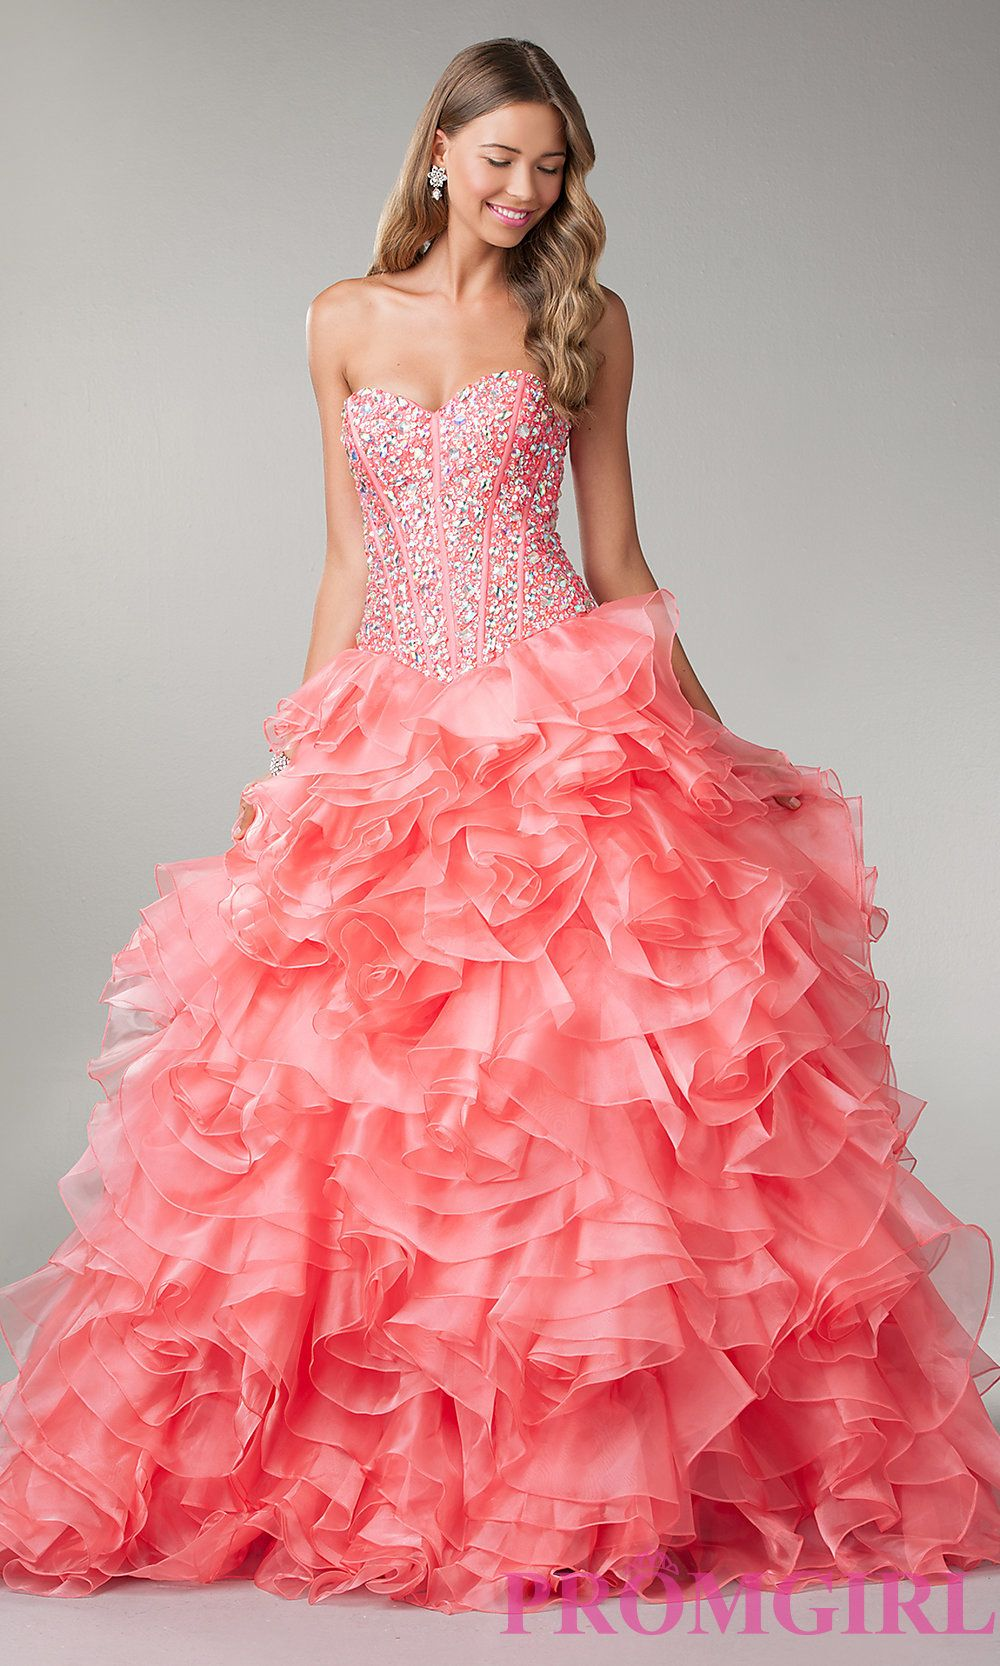 Beaded Corset Prom Dress, Strapless Ball Gown- PromGirl | prom ...